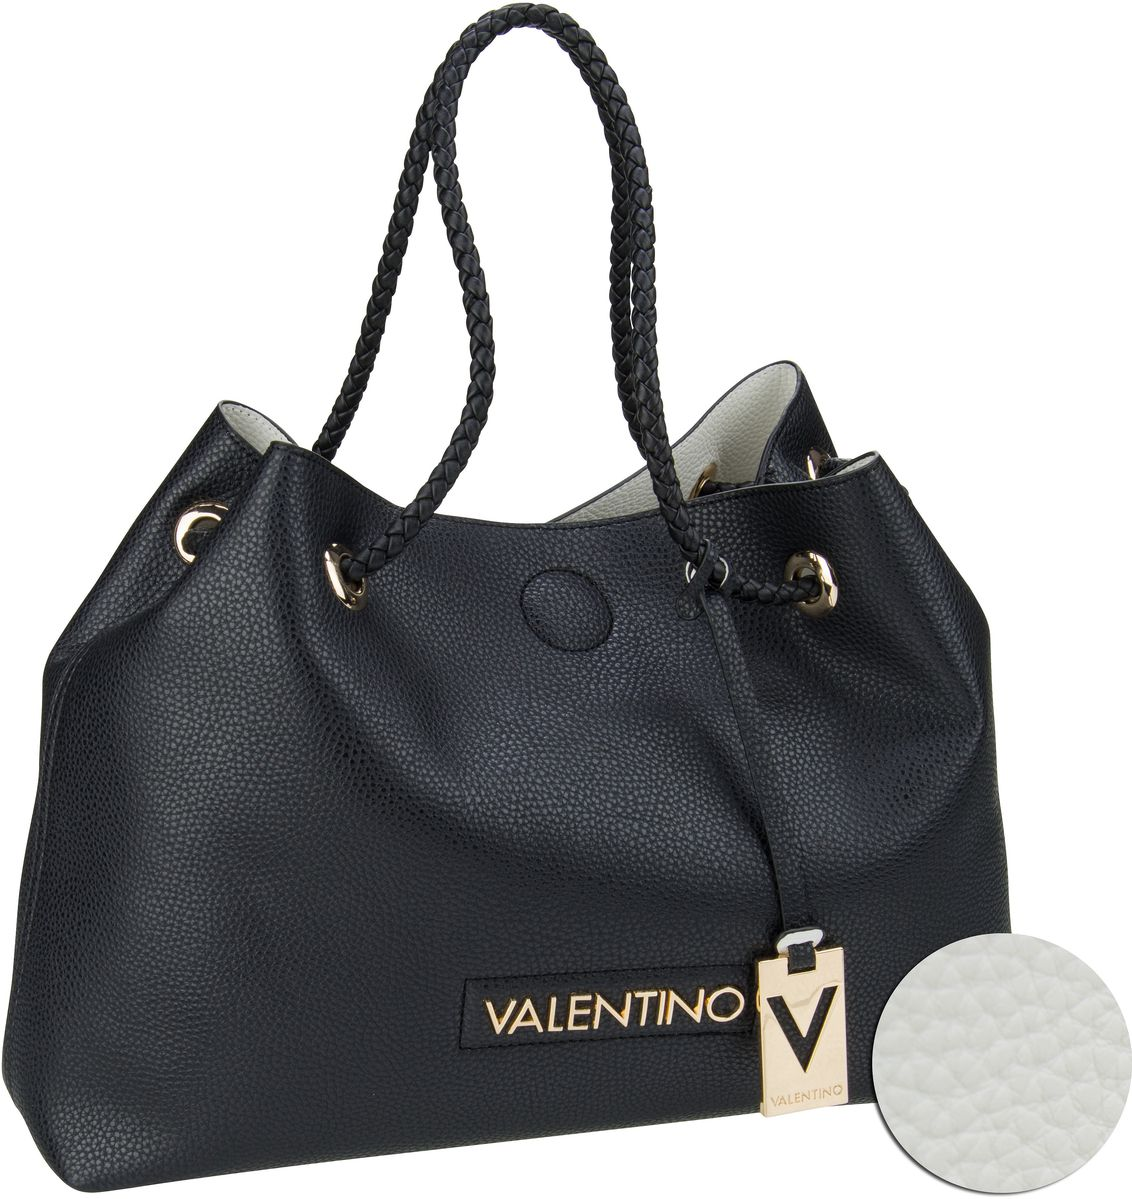 Handtasche Corsair Shopping D02 Nero/Bianco